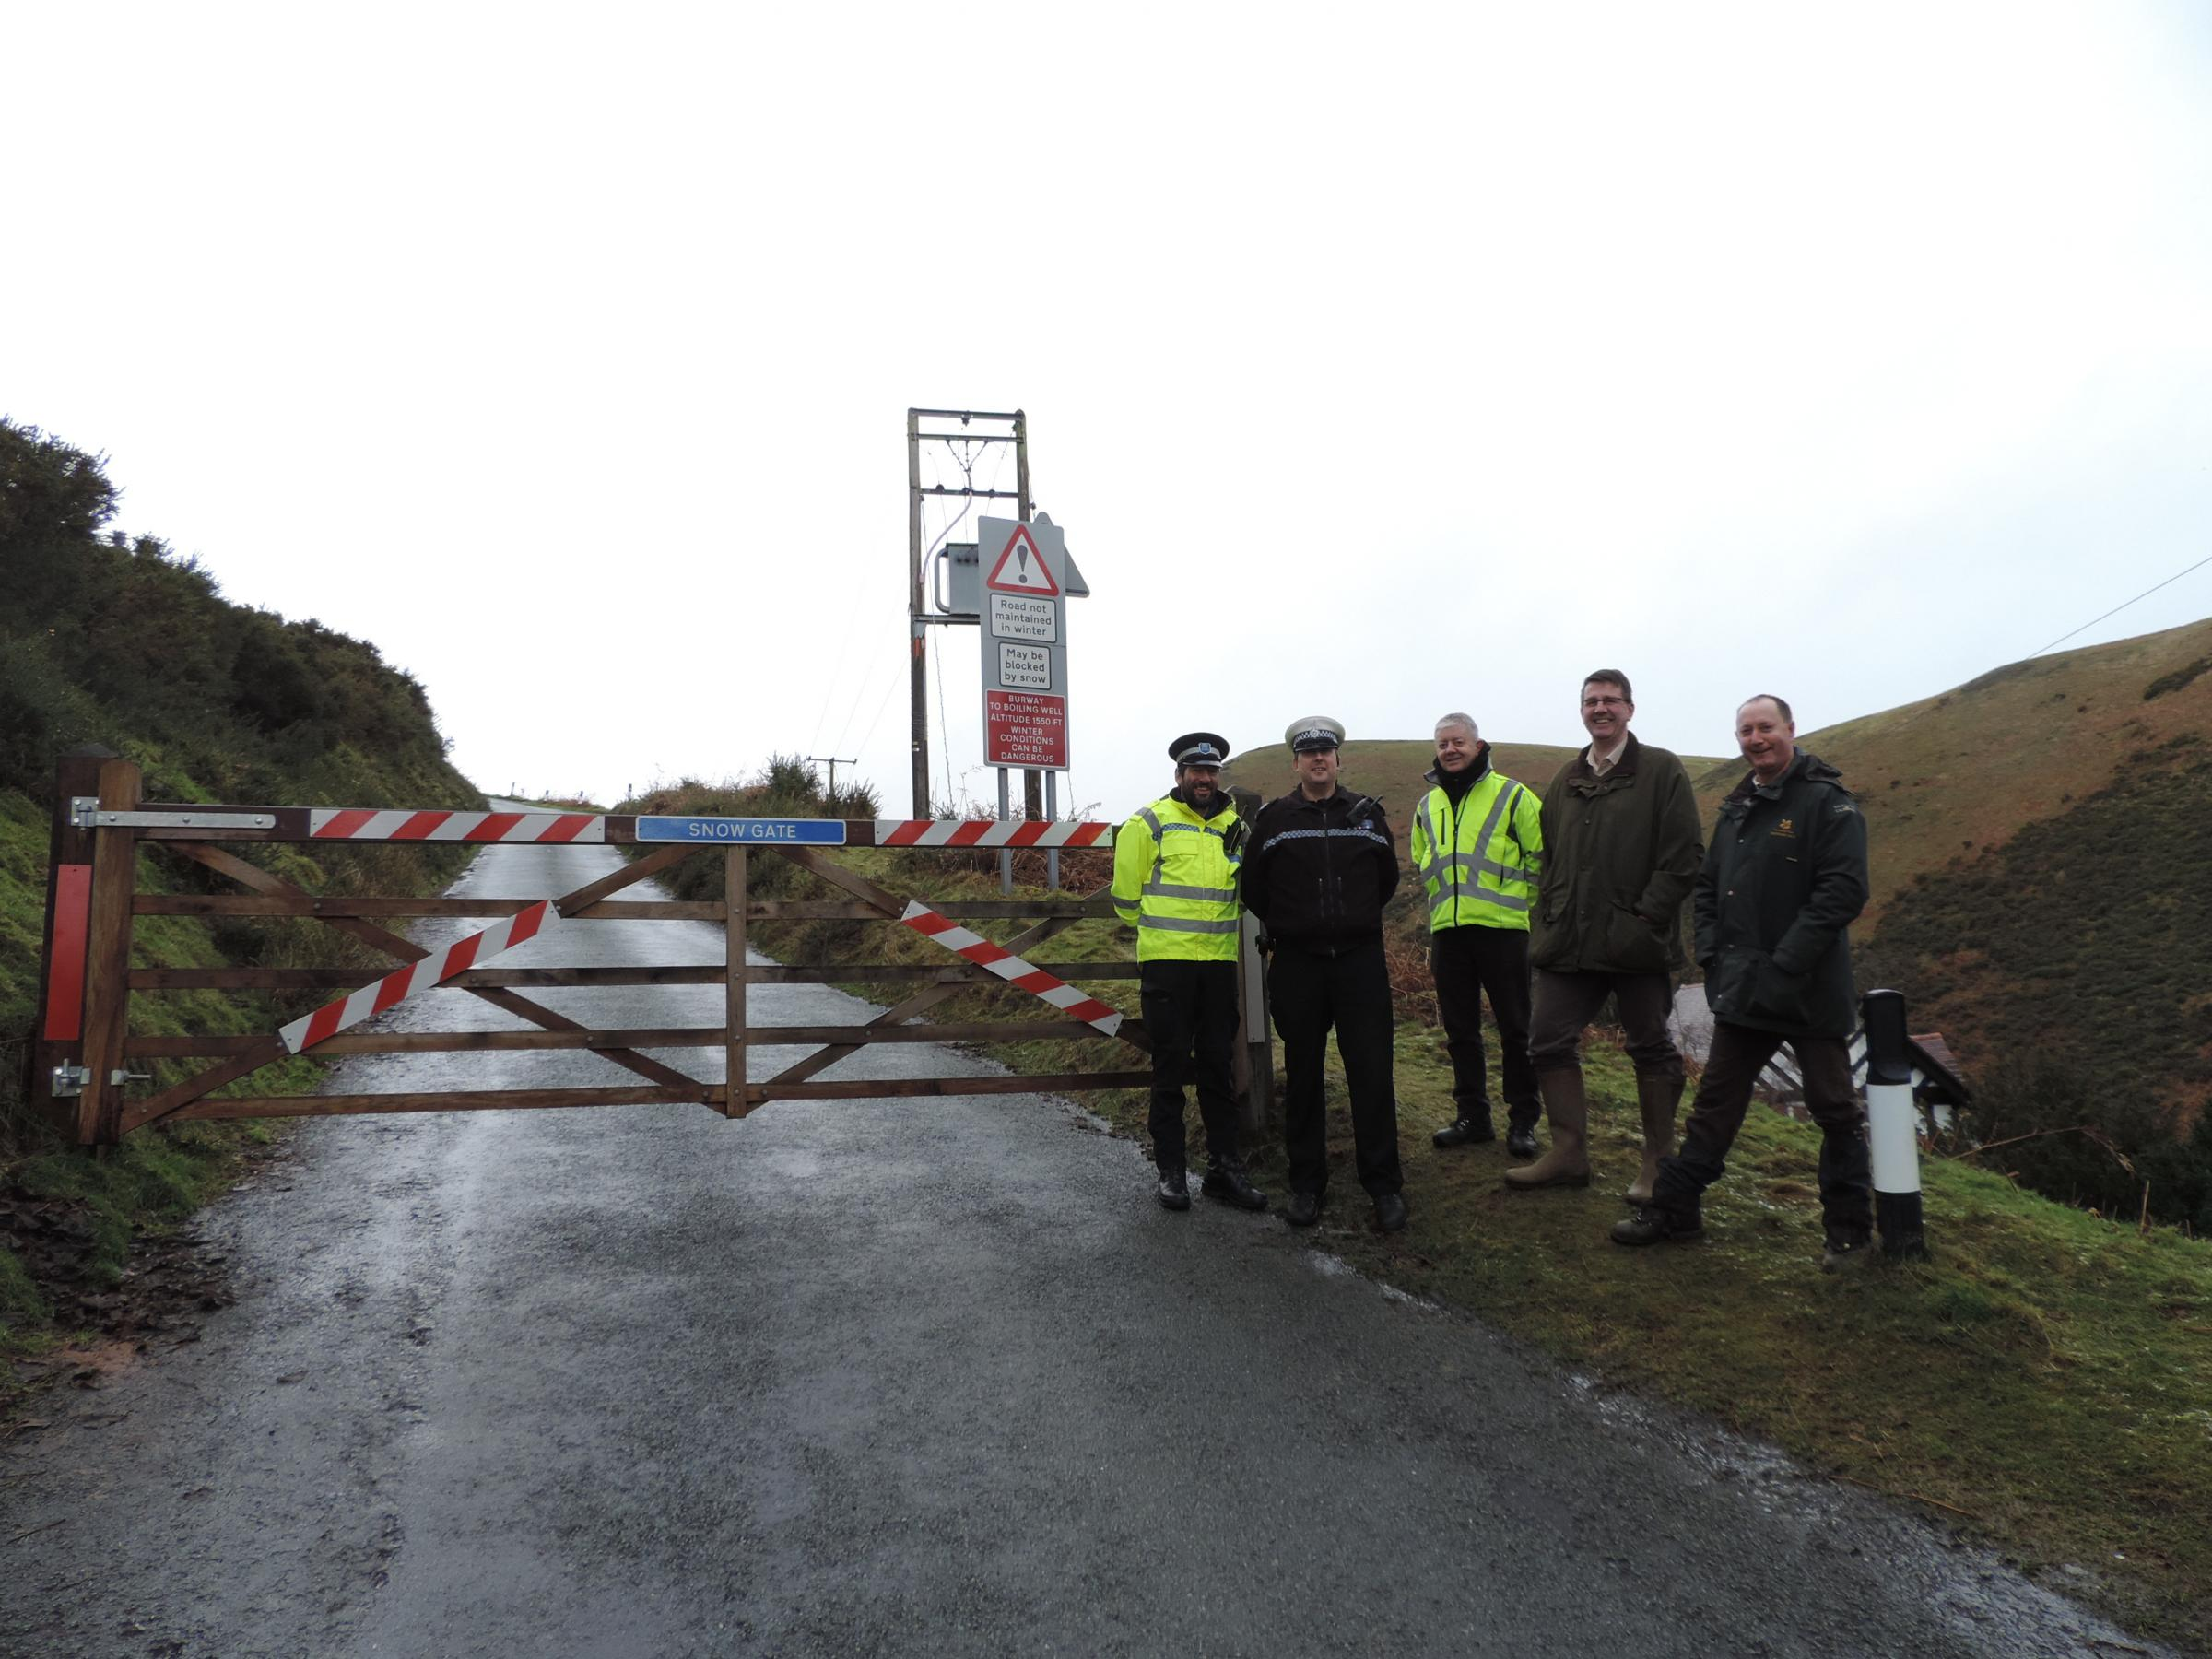 With the new snow gate from left are: Lee Chapman, county councillor; Damon Preston and Dave Baron from the West Mercia Police local team; Chris Jackson from Shropshire County Highways Department; and Dave Cowell, area ranger from the National Trust. Pict